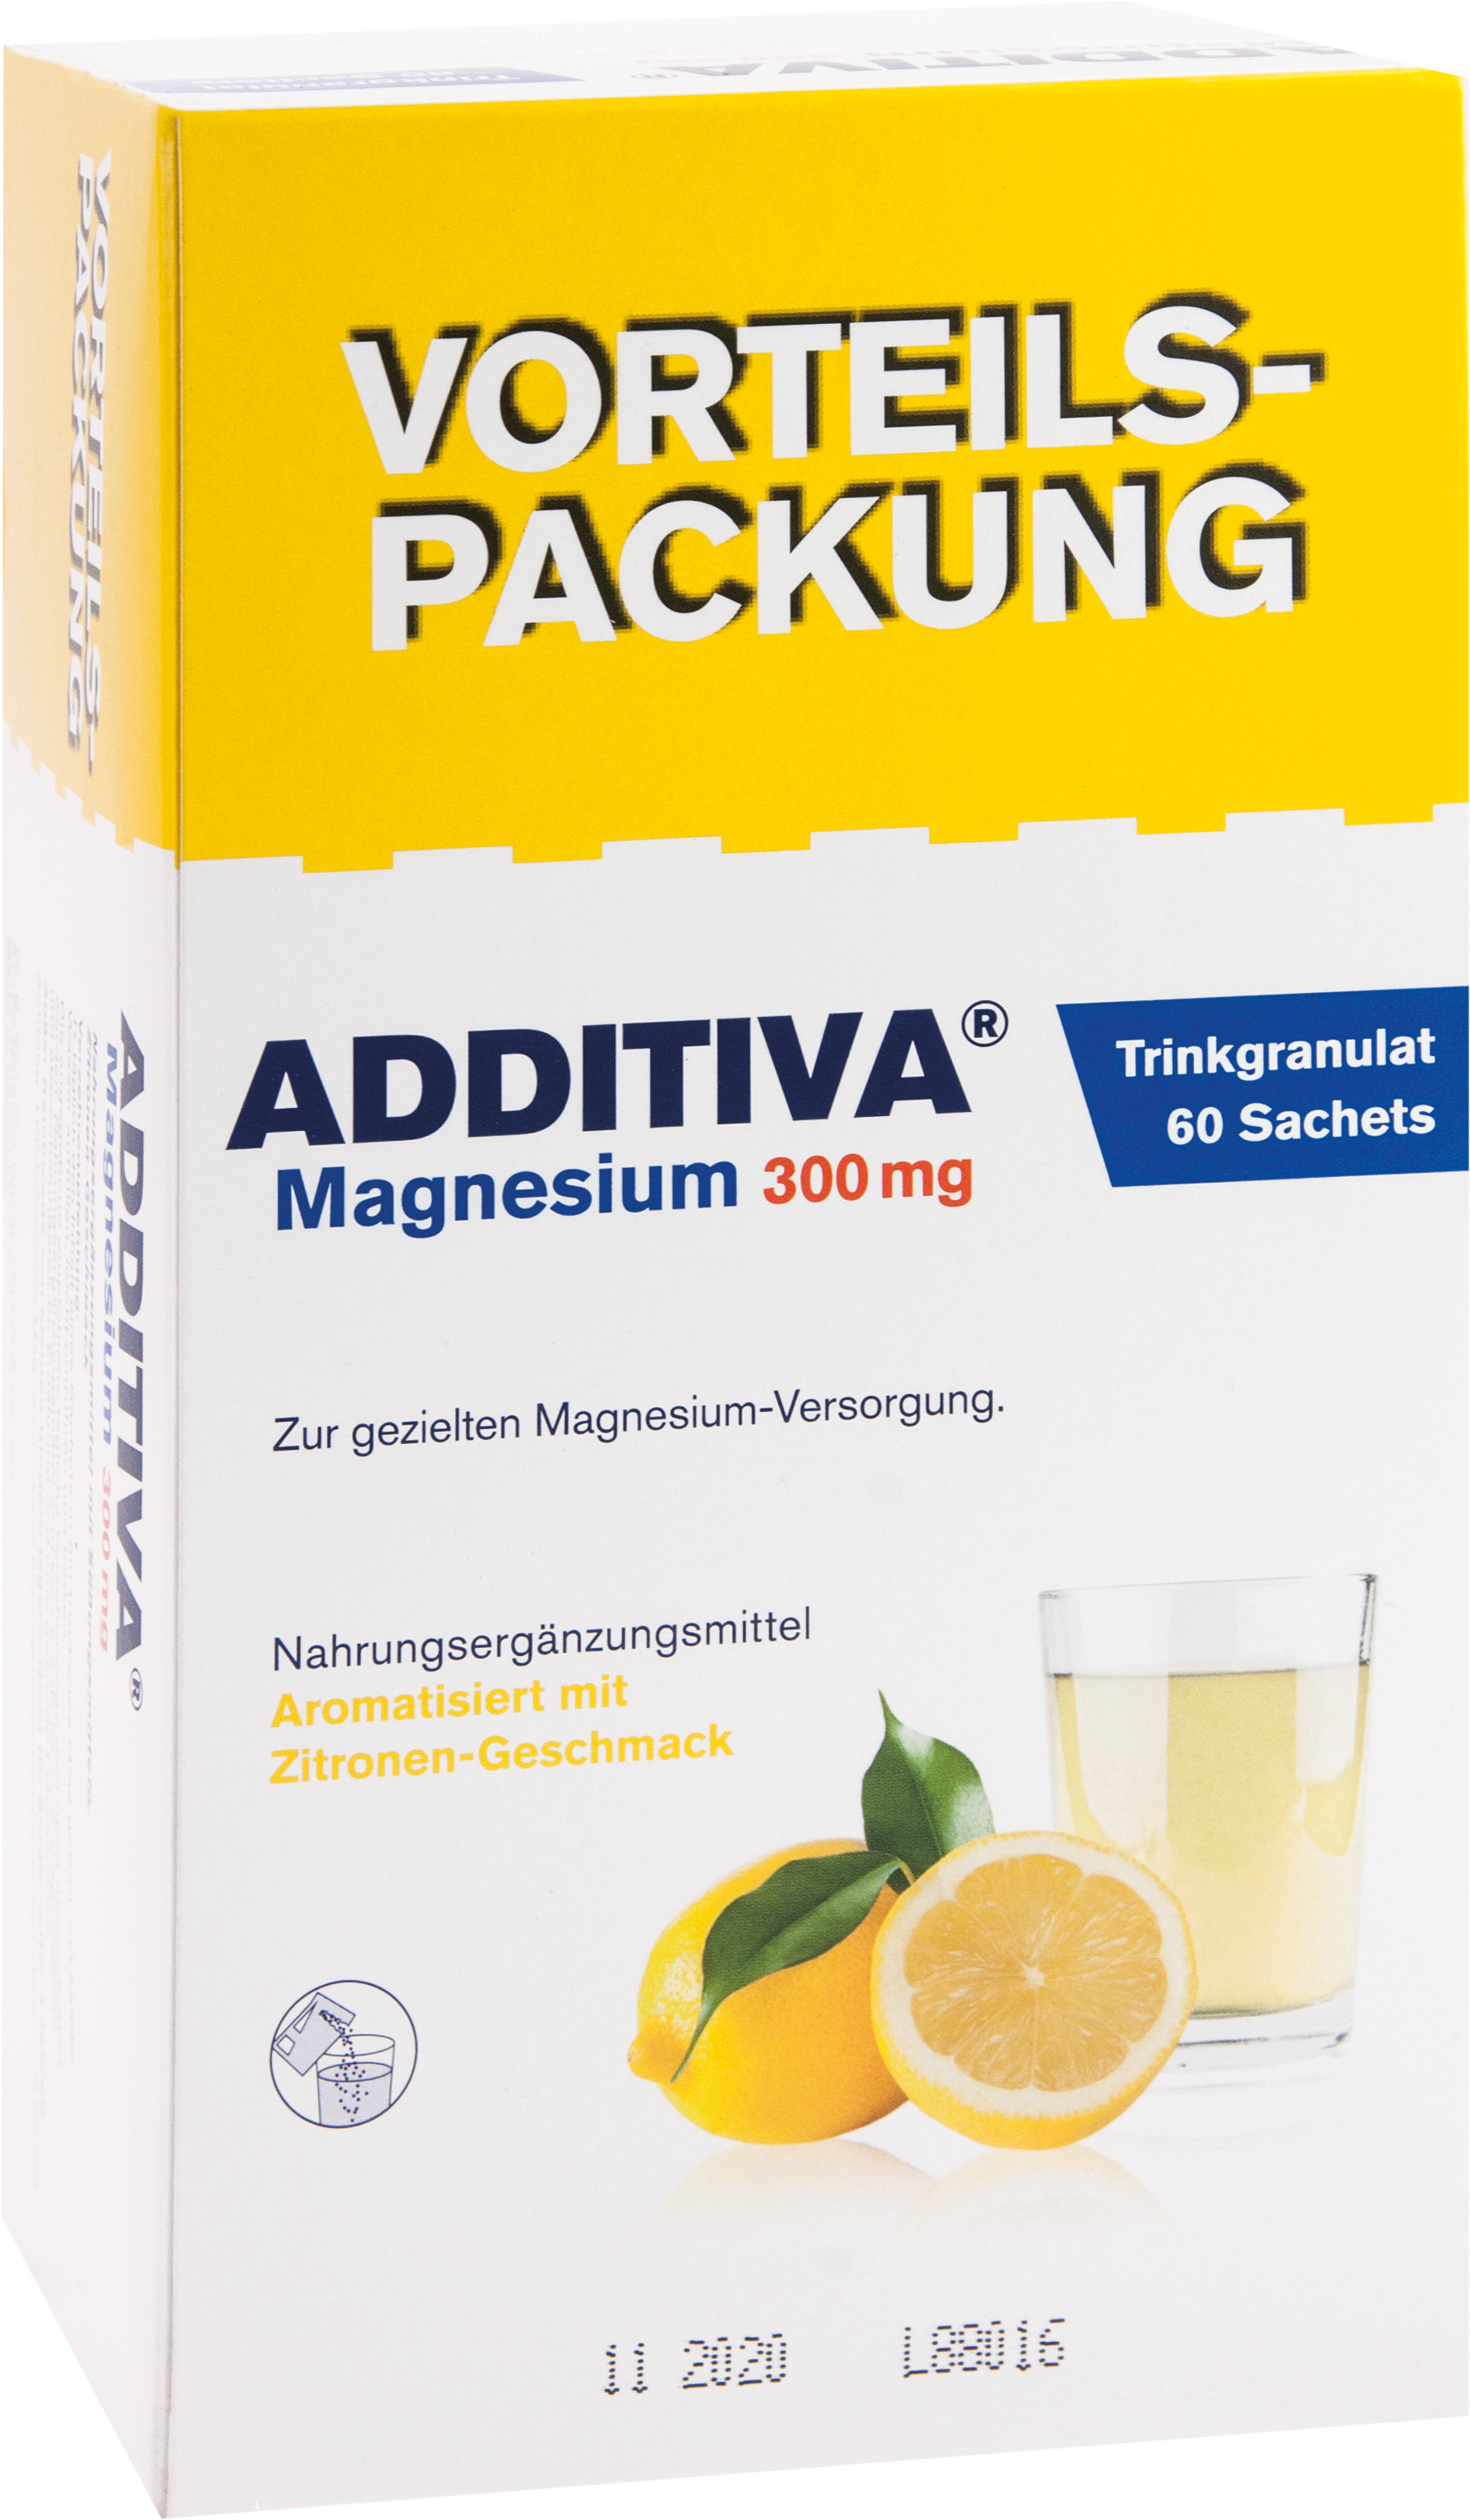 ADDITIVA Magnesium 300mg N